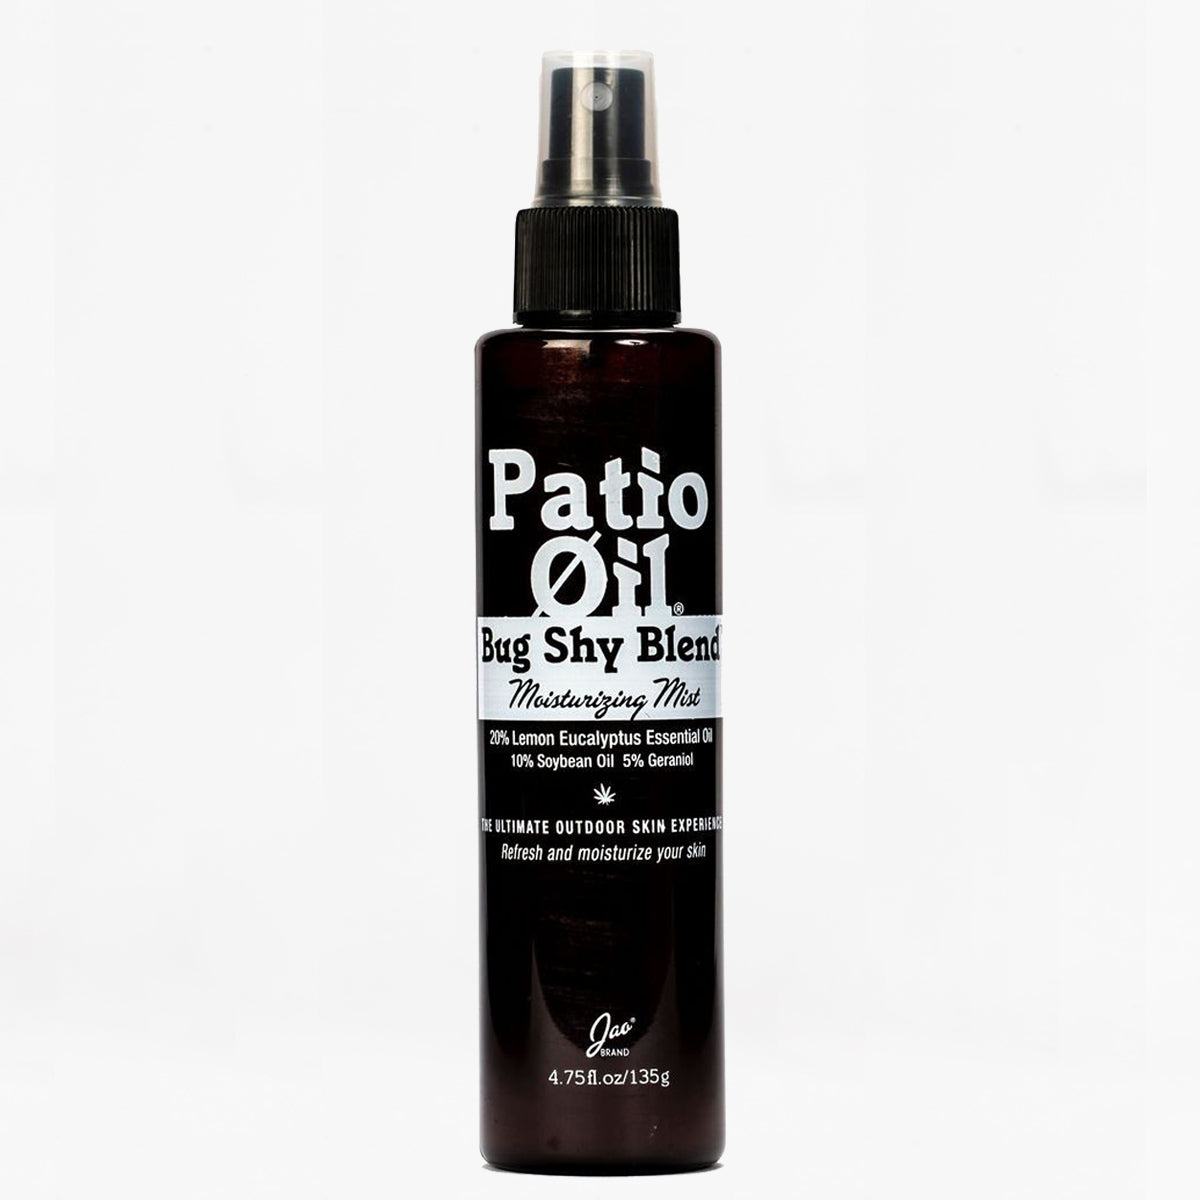 Jao patio oil moisturizing mist